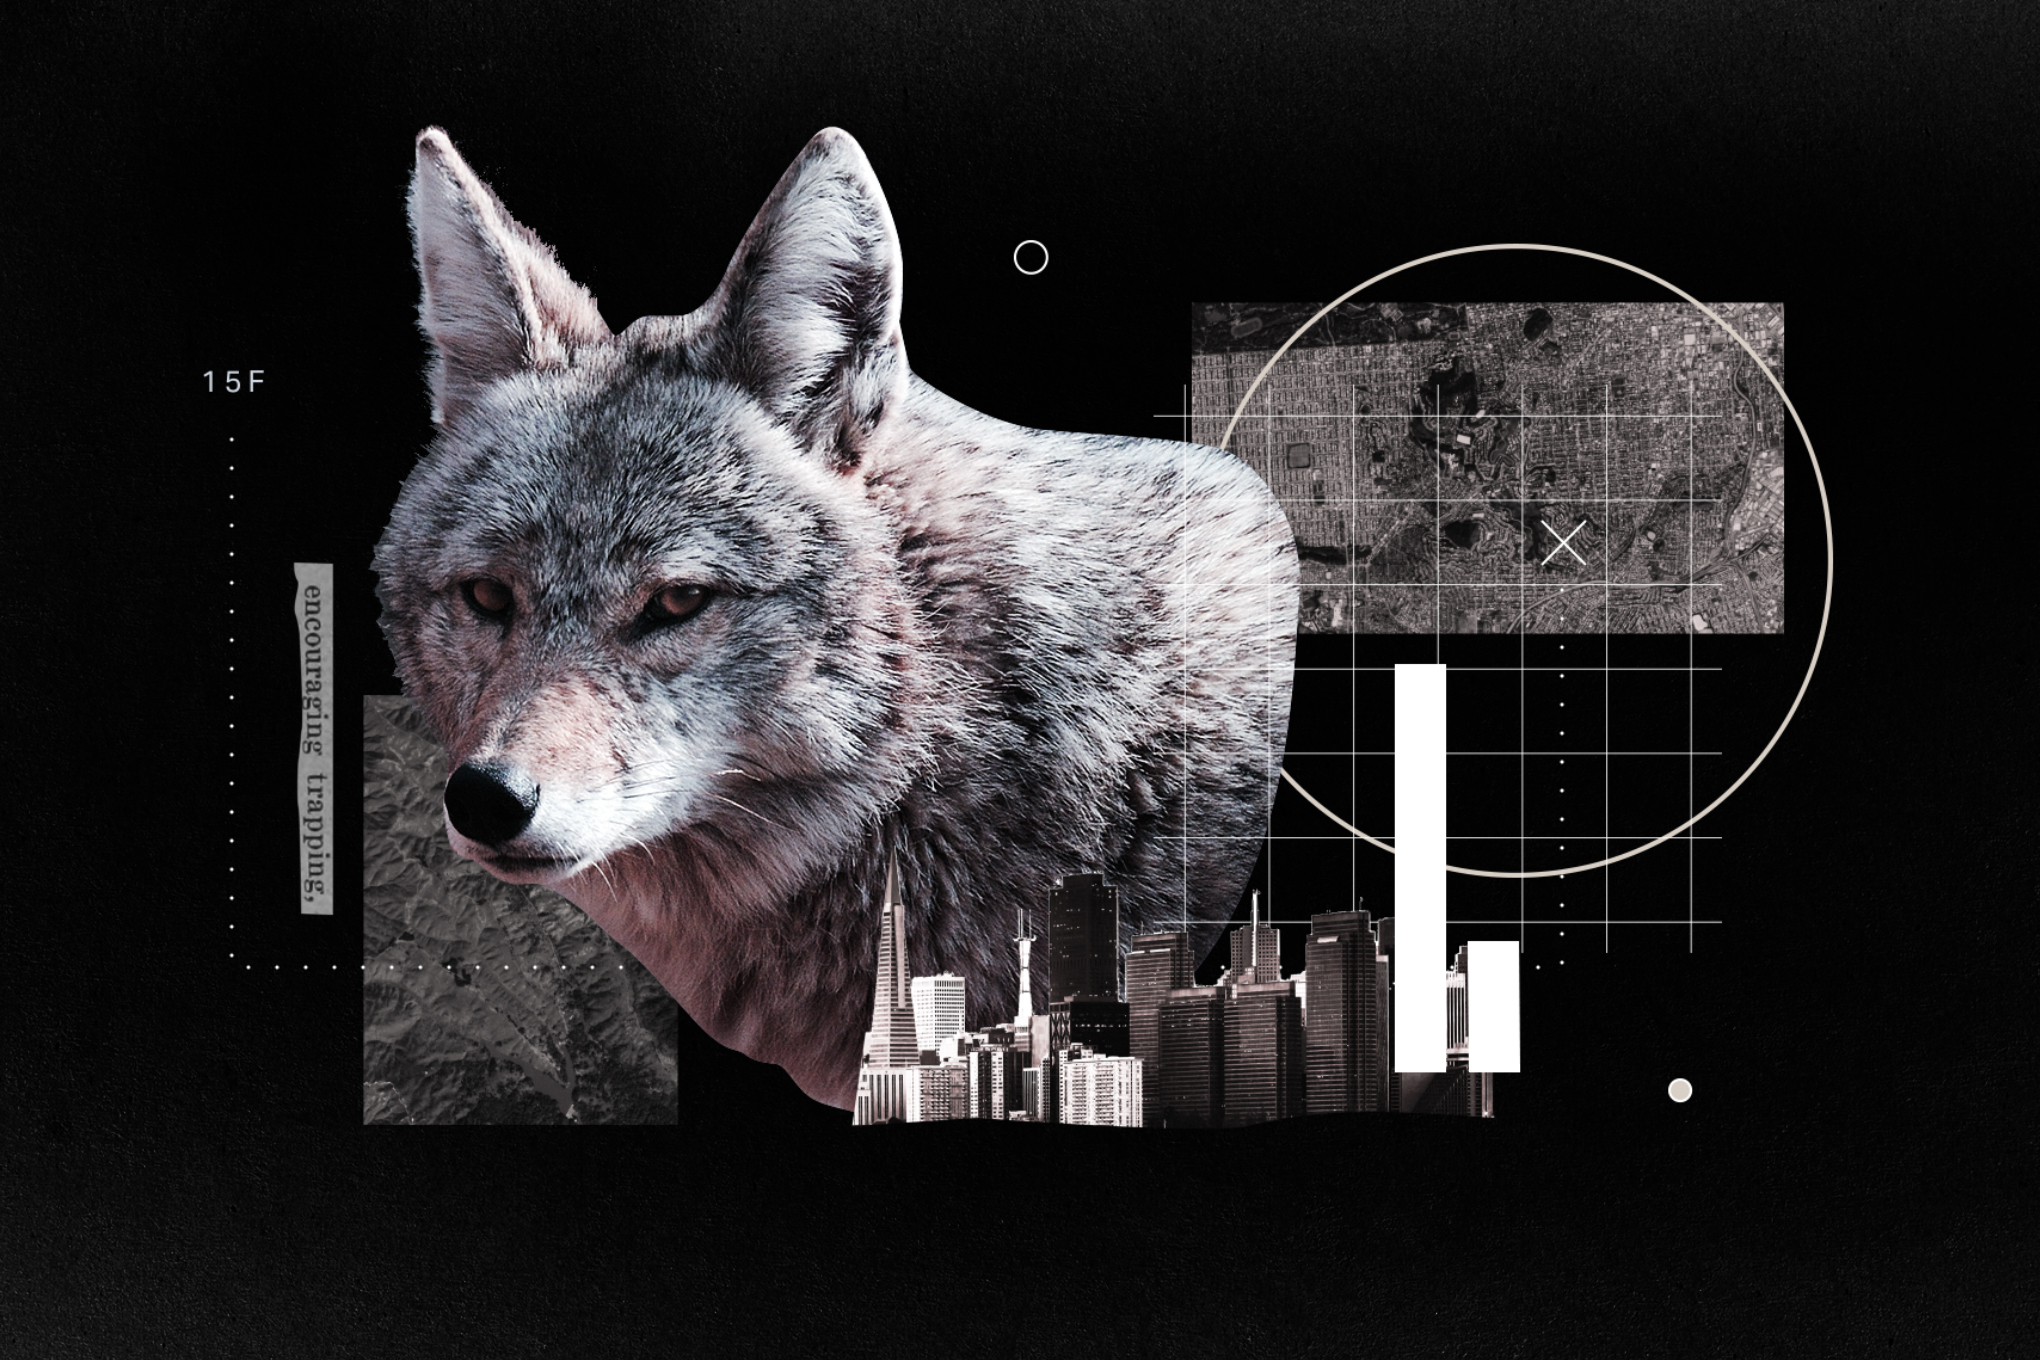 collage of a coyote and a cityscape